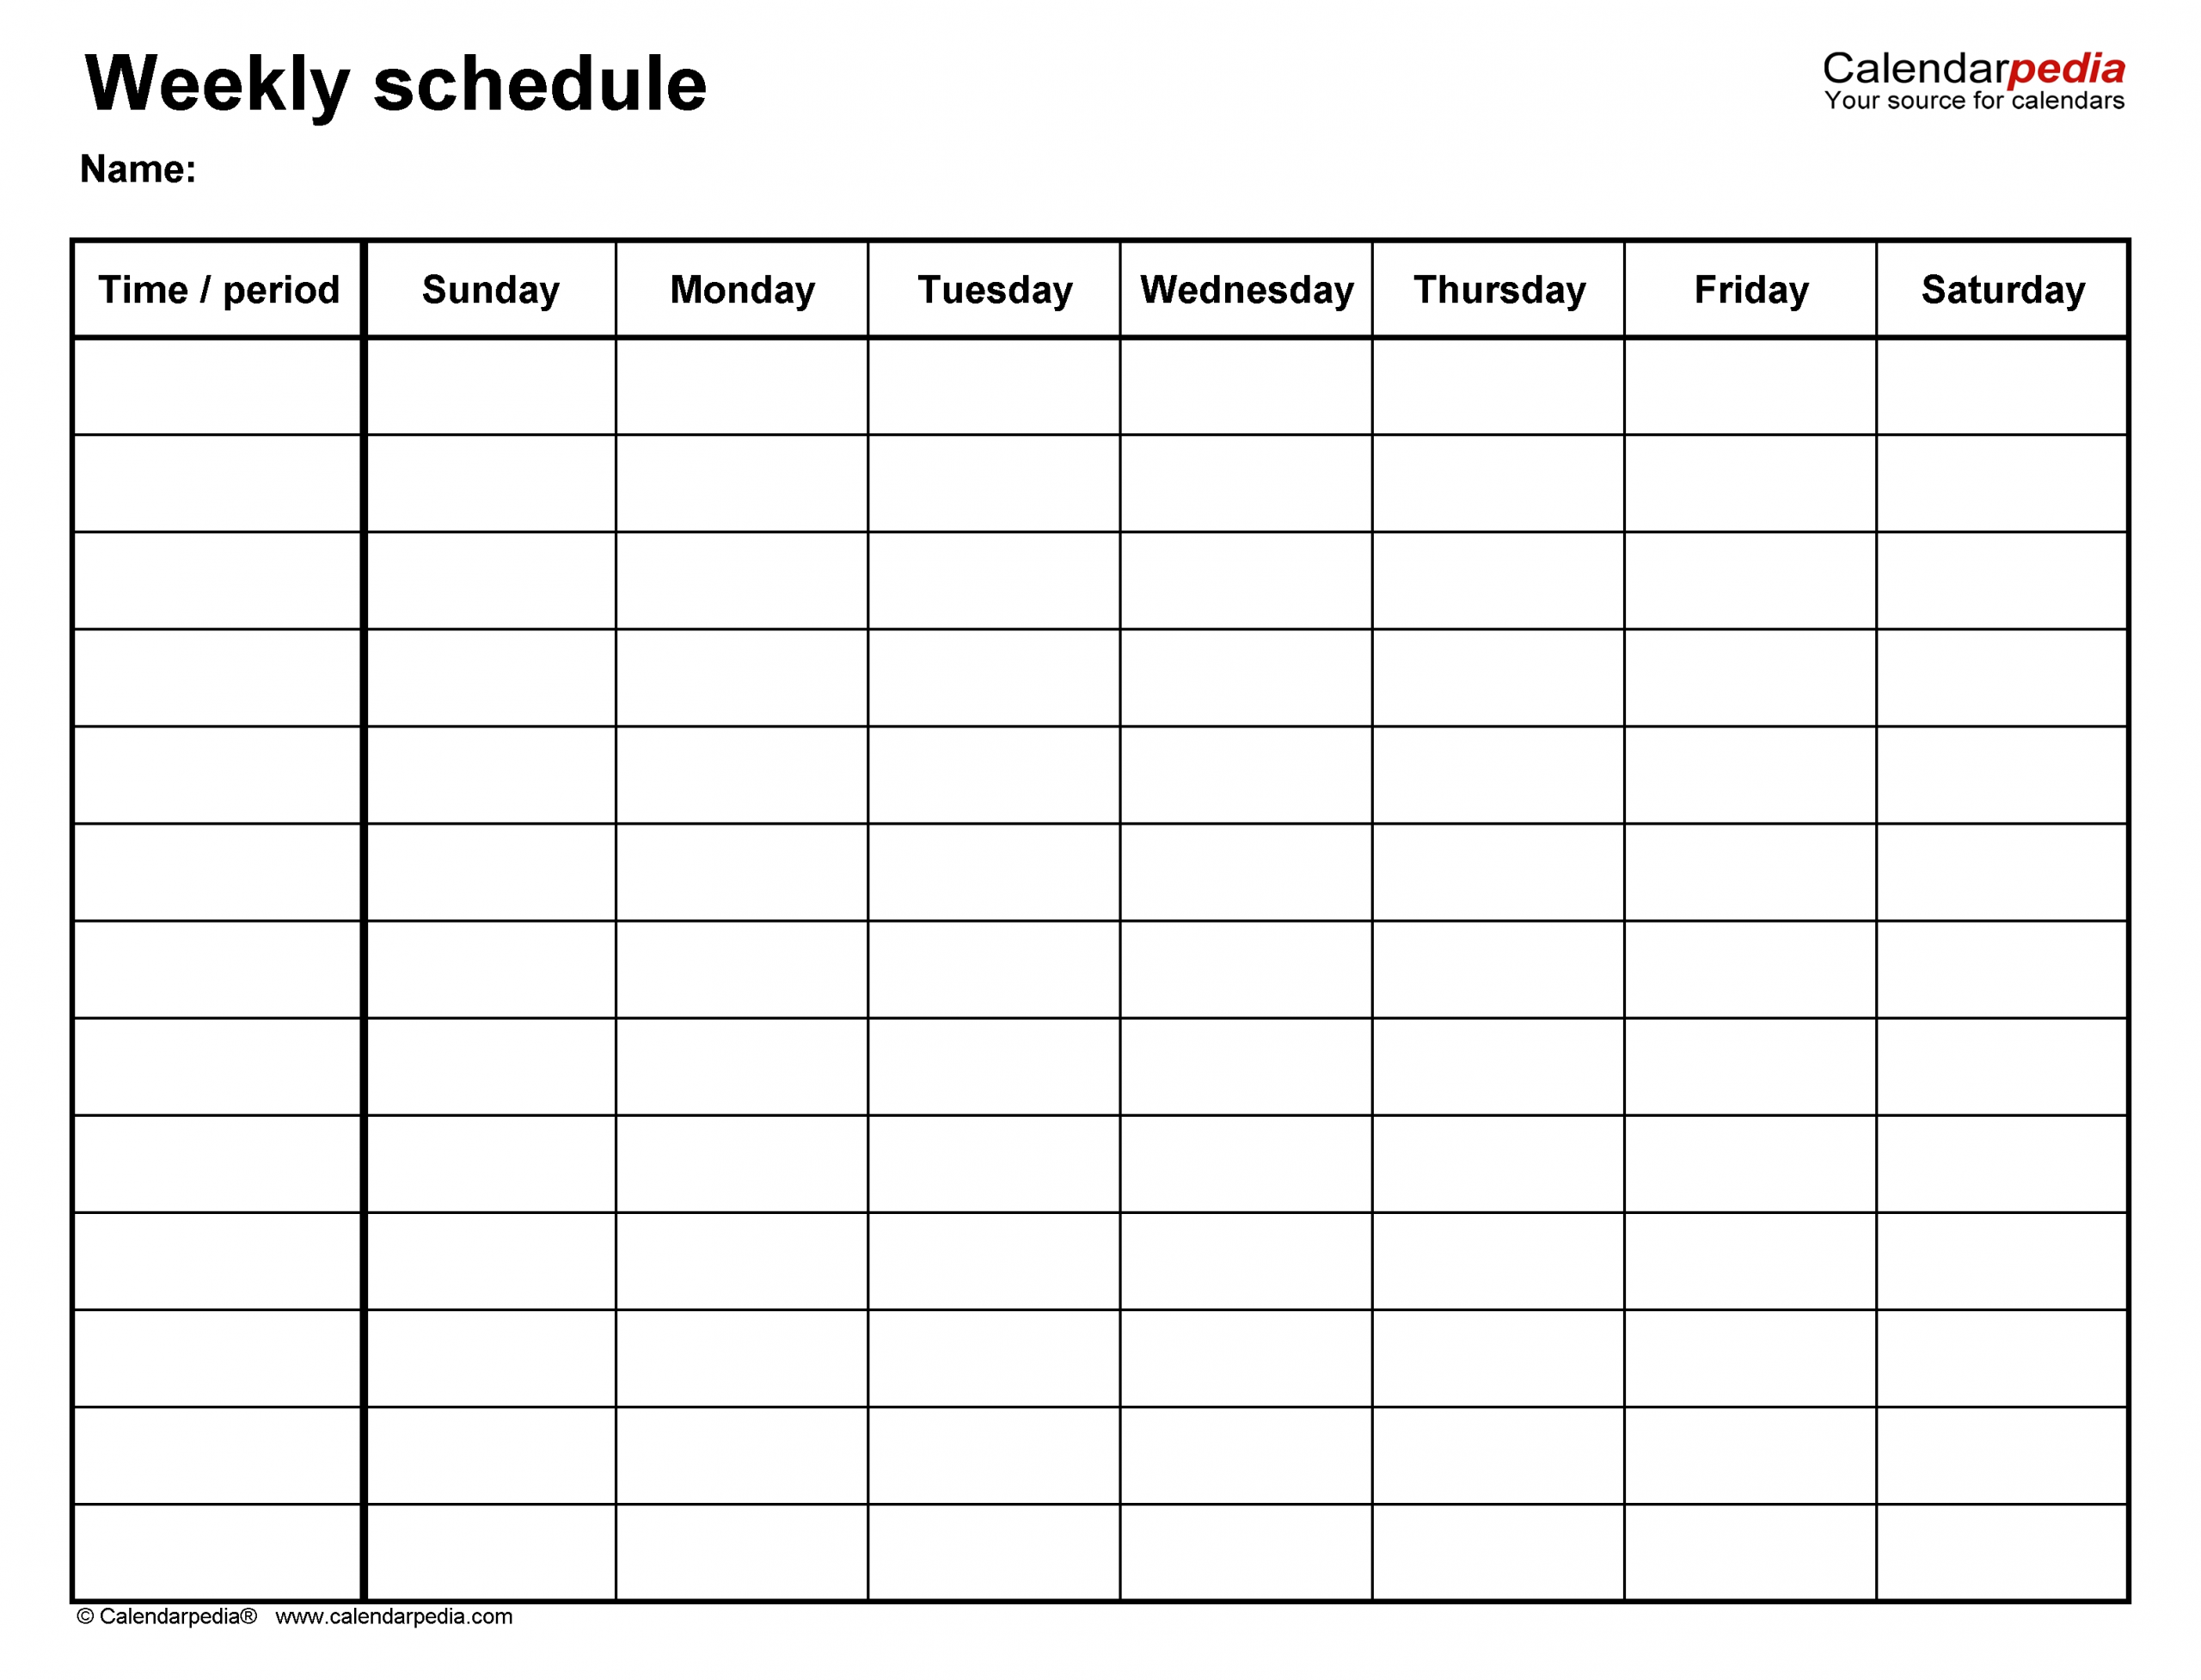 Free Weekly Schedule Templates For Word - 18 Templates